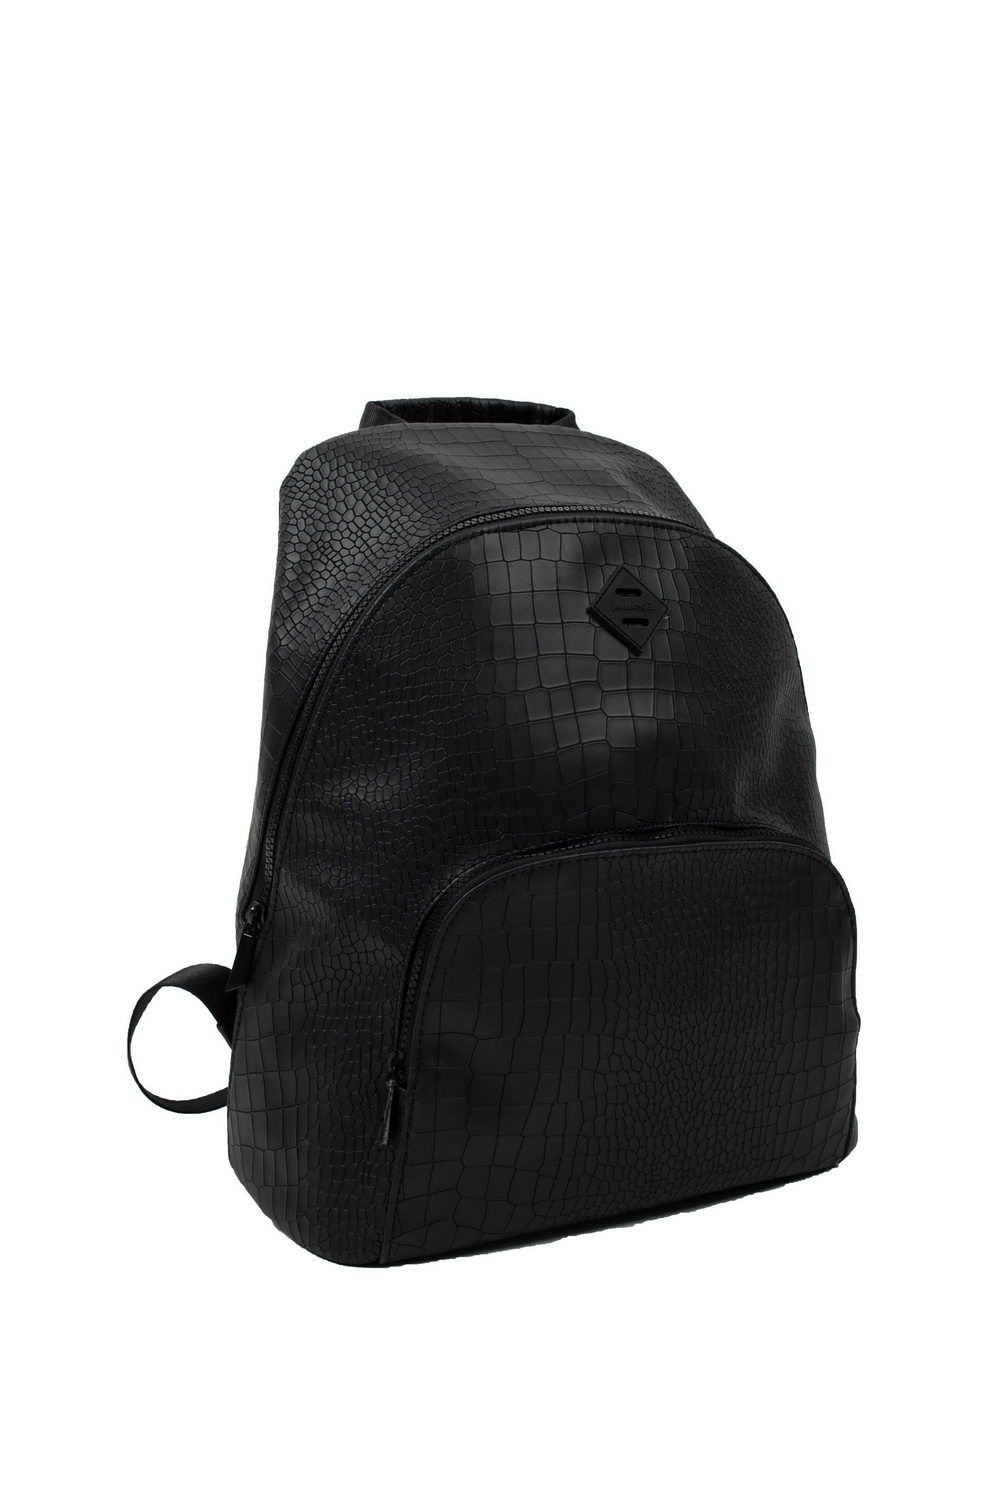 K+K Backpack (6030) - PVP 49,95__resize